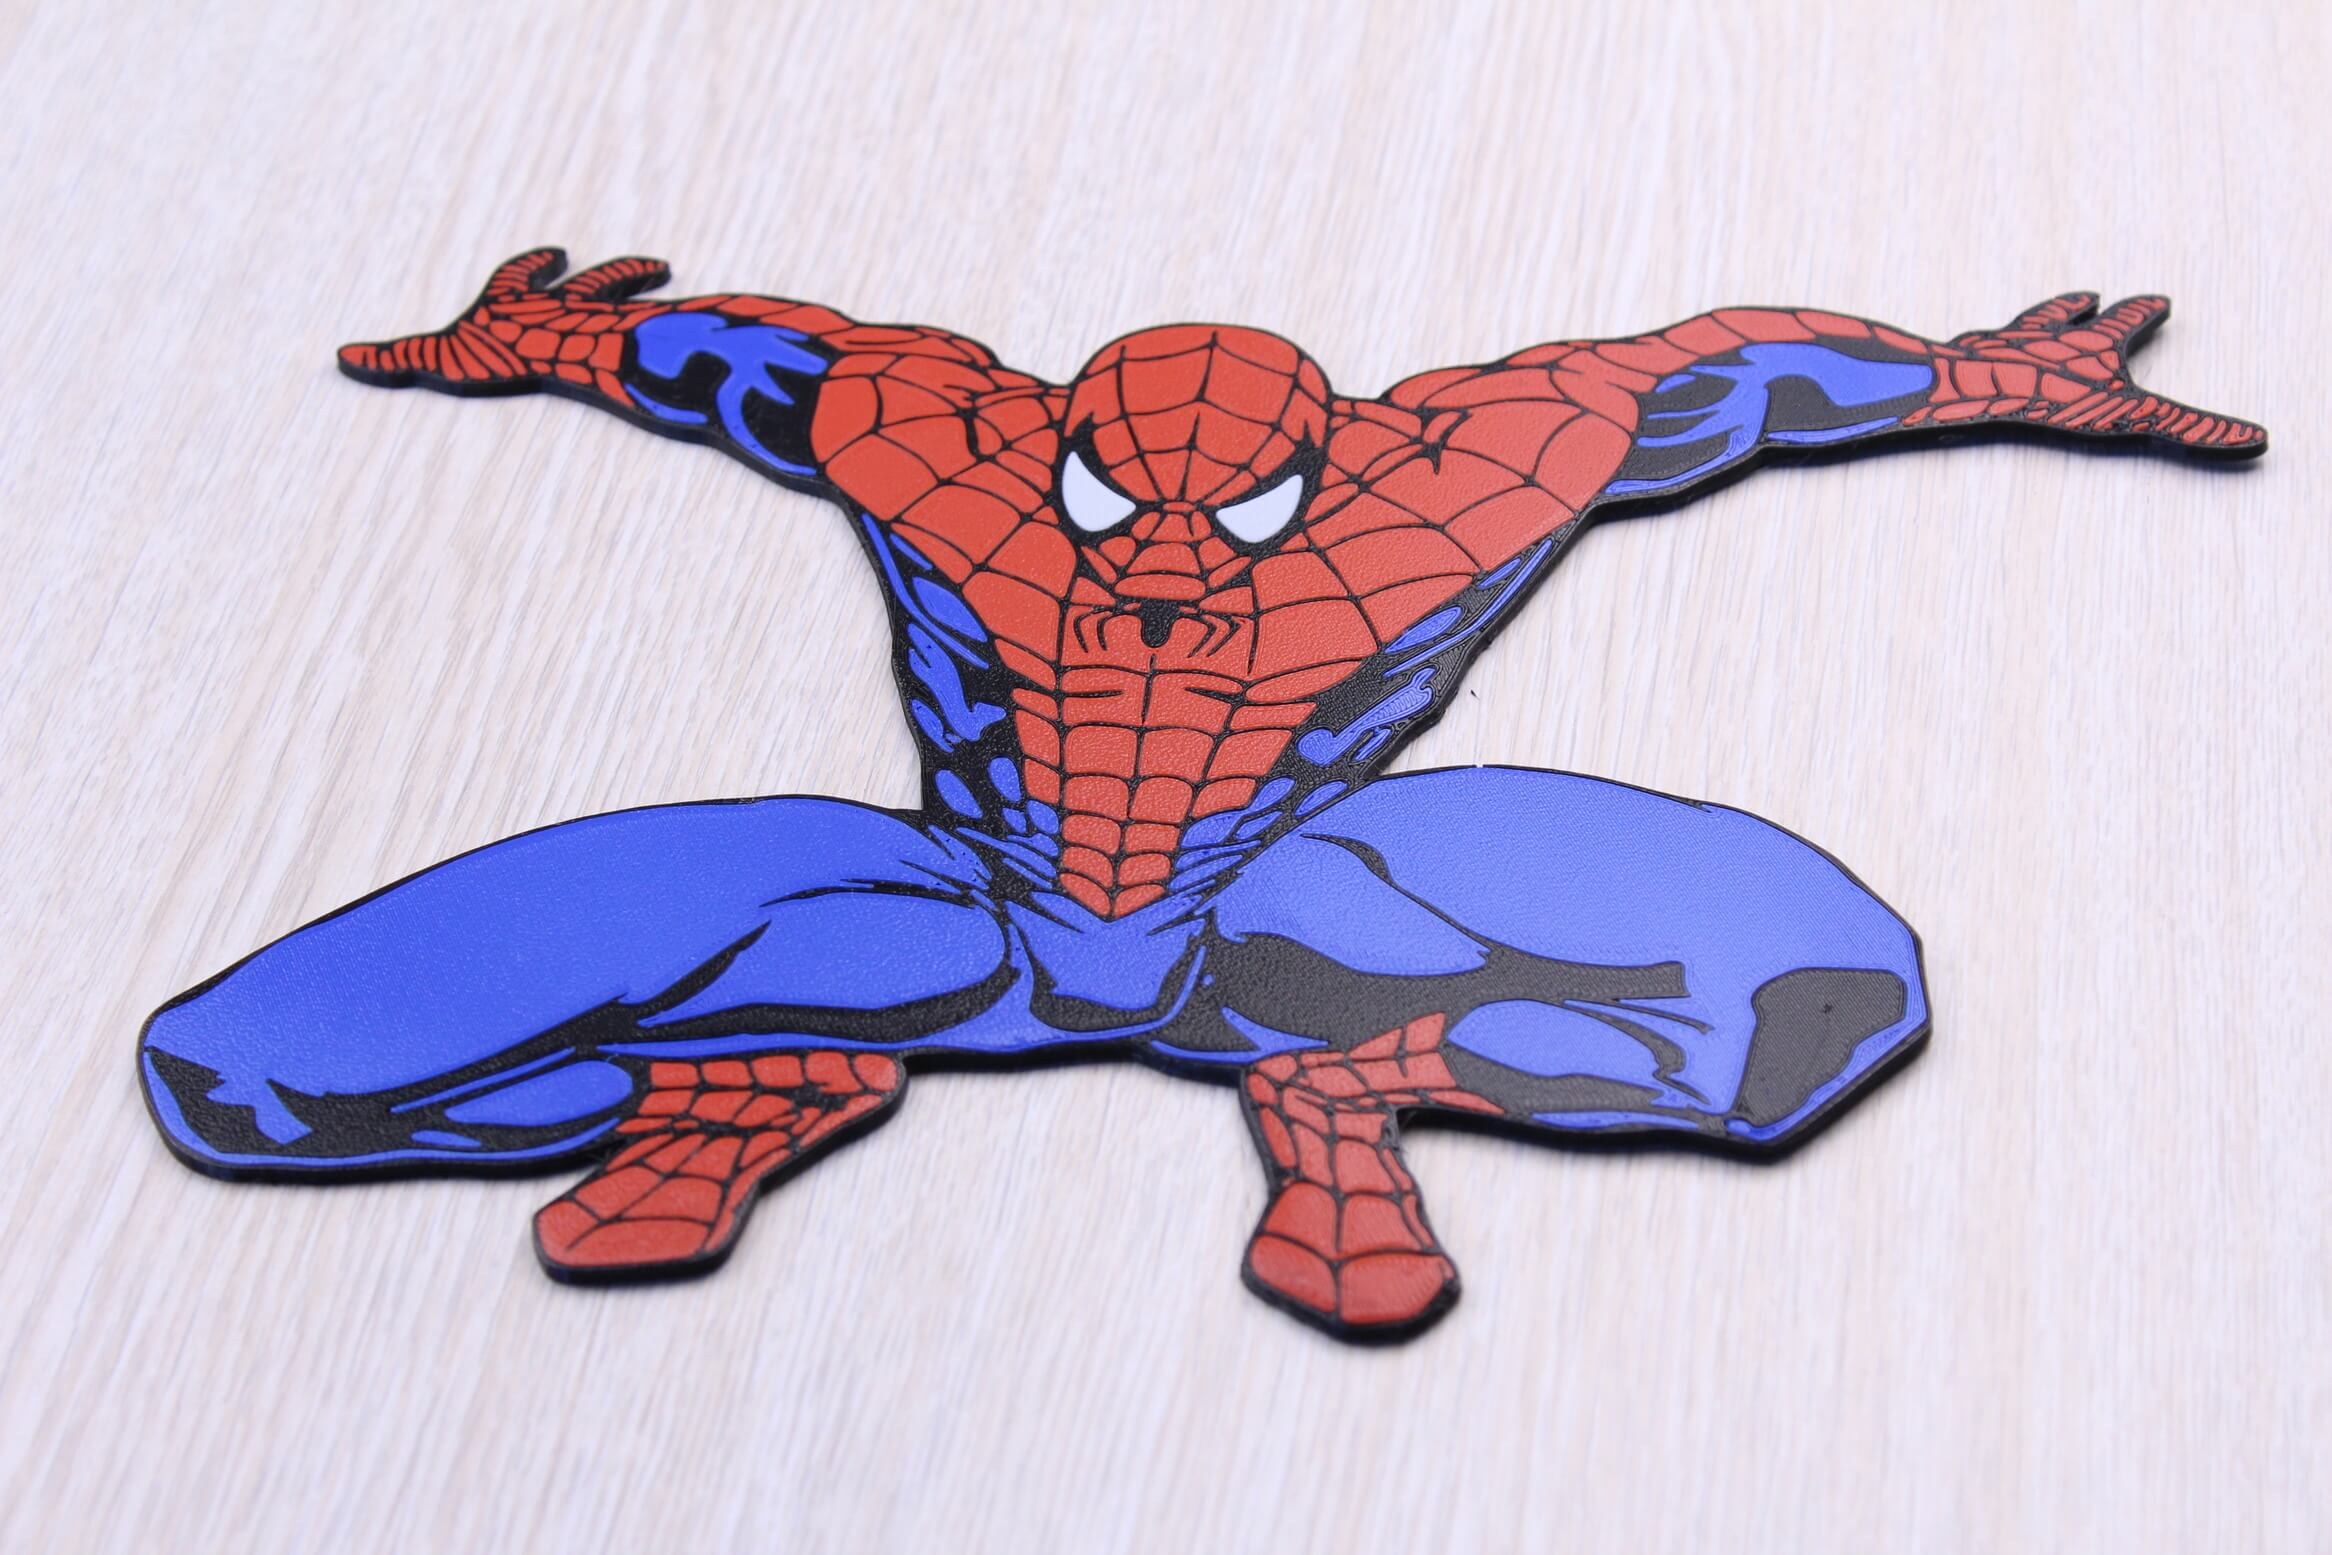 Spiderman Multi Color 3D Print 1 | Multi-Color 3D Printing Using IdeaMaker